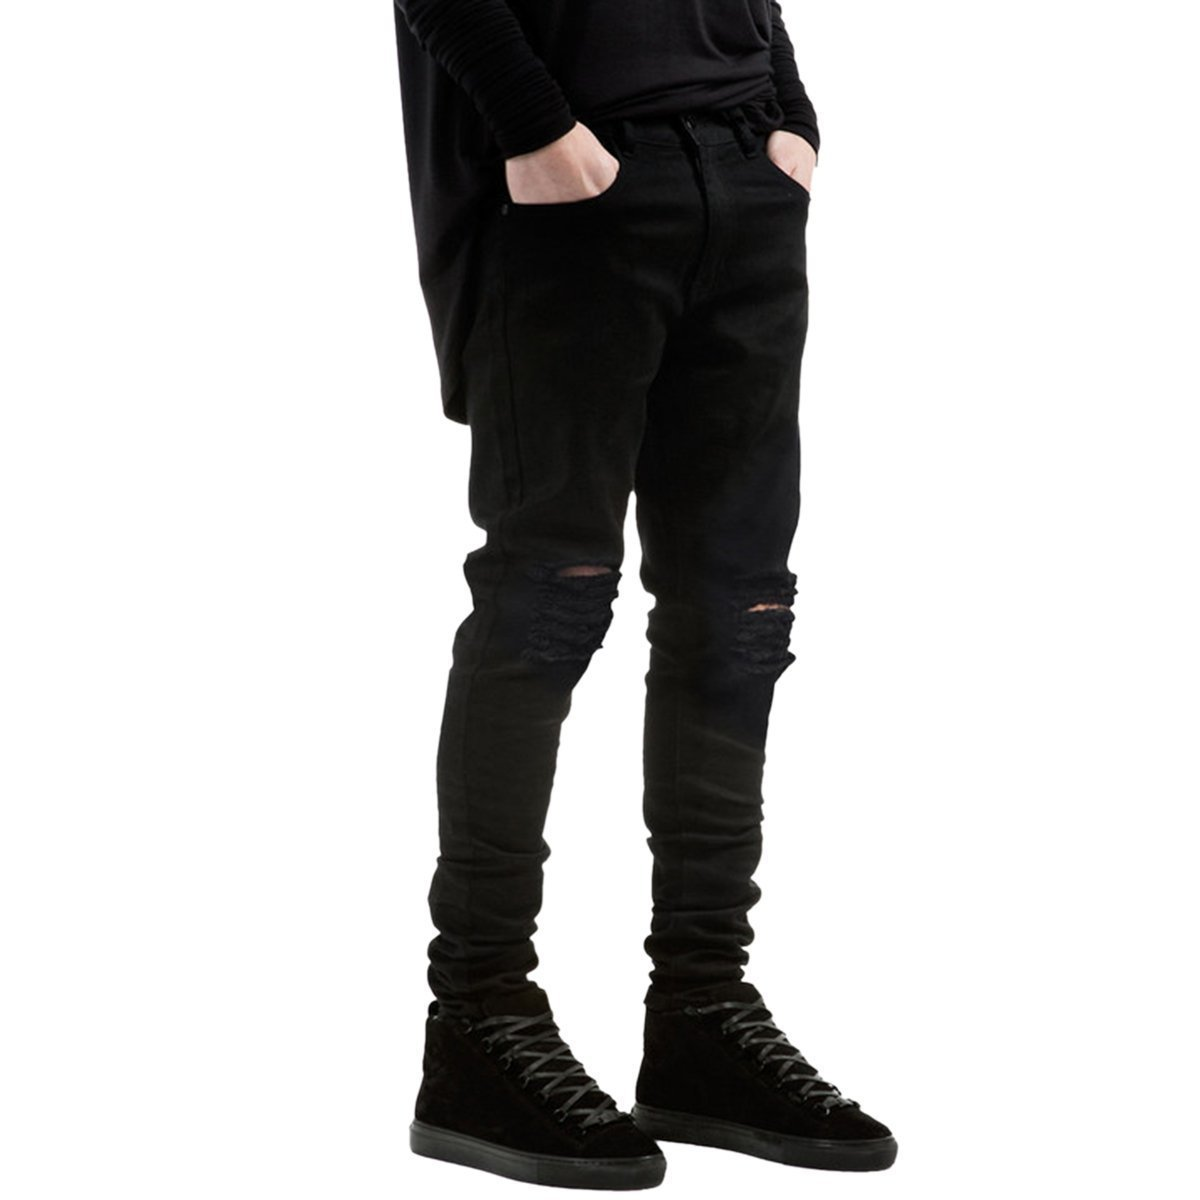 TOPING Fine Fashion;Handsome Men's Ripped Jeans Vintage Fitted Stretchy Tapered Leg Destroyed Jeans BlackTagsize32=USsize33